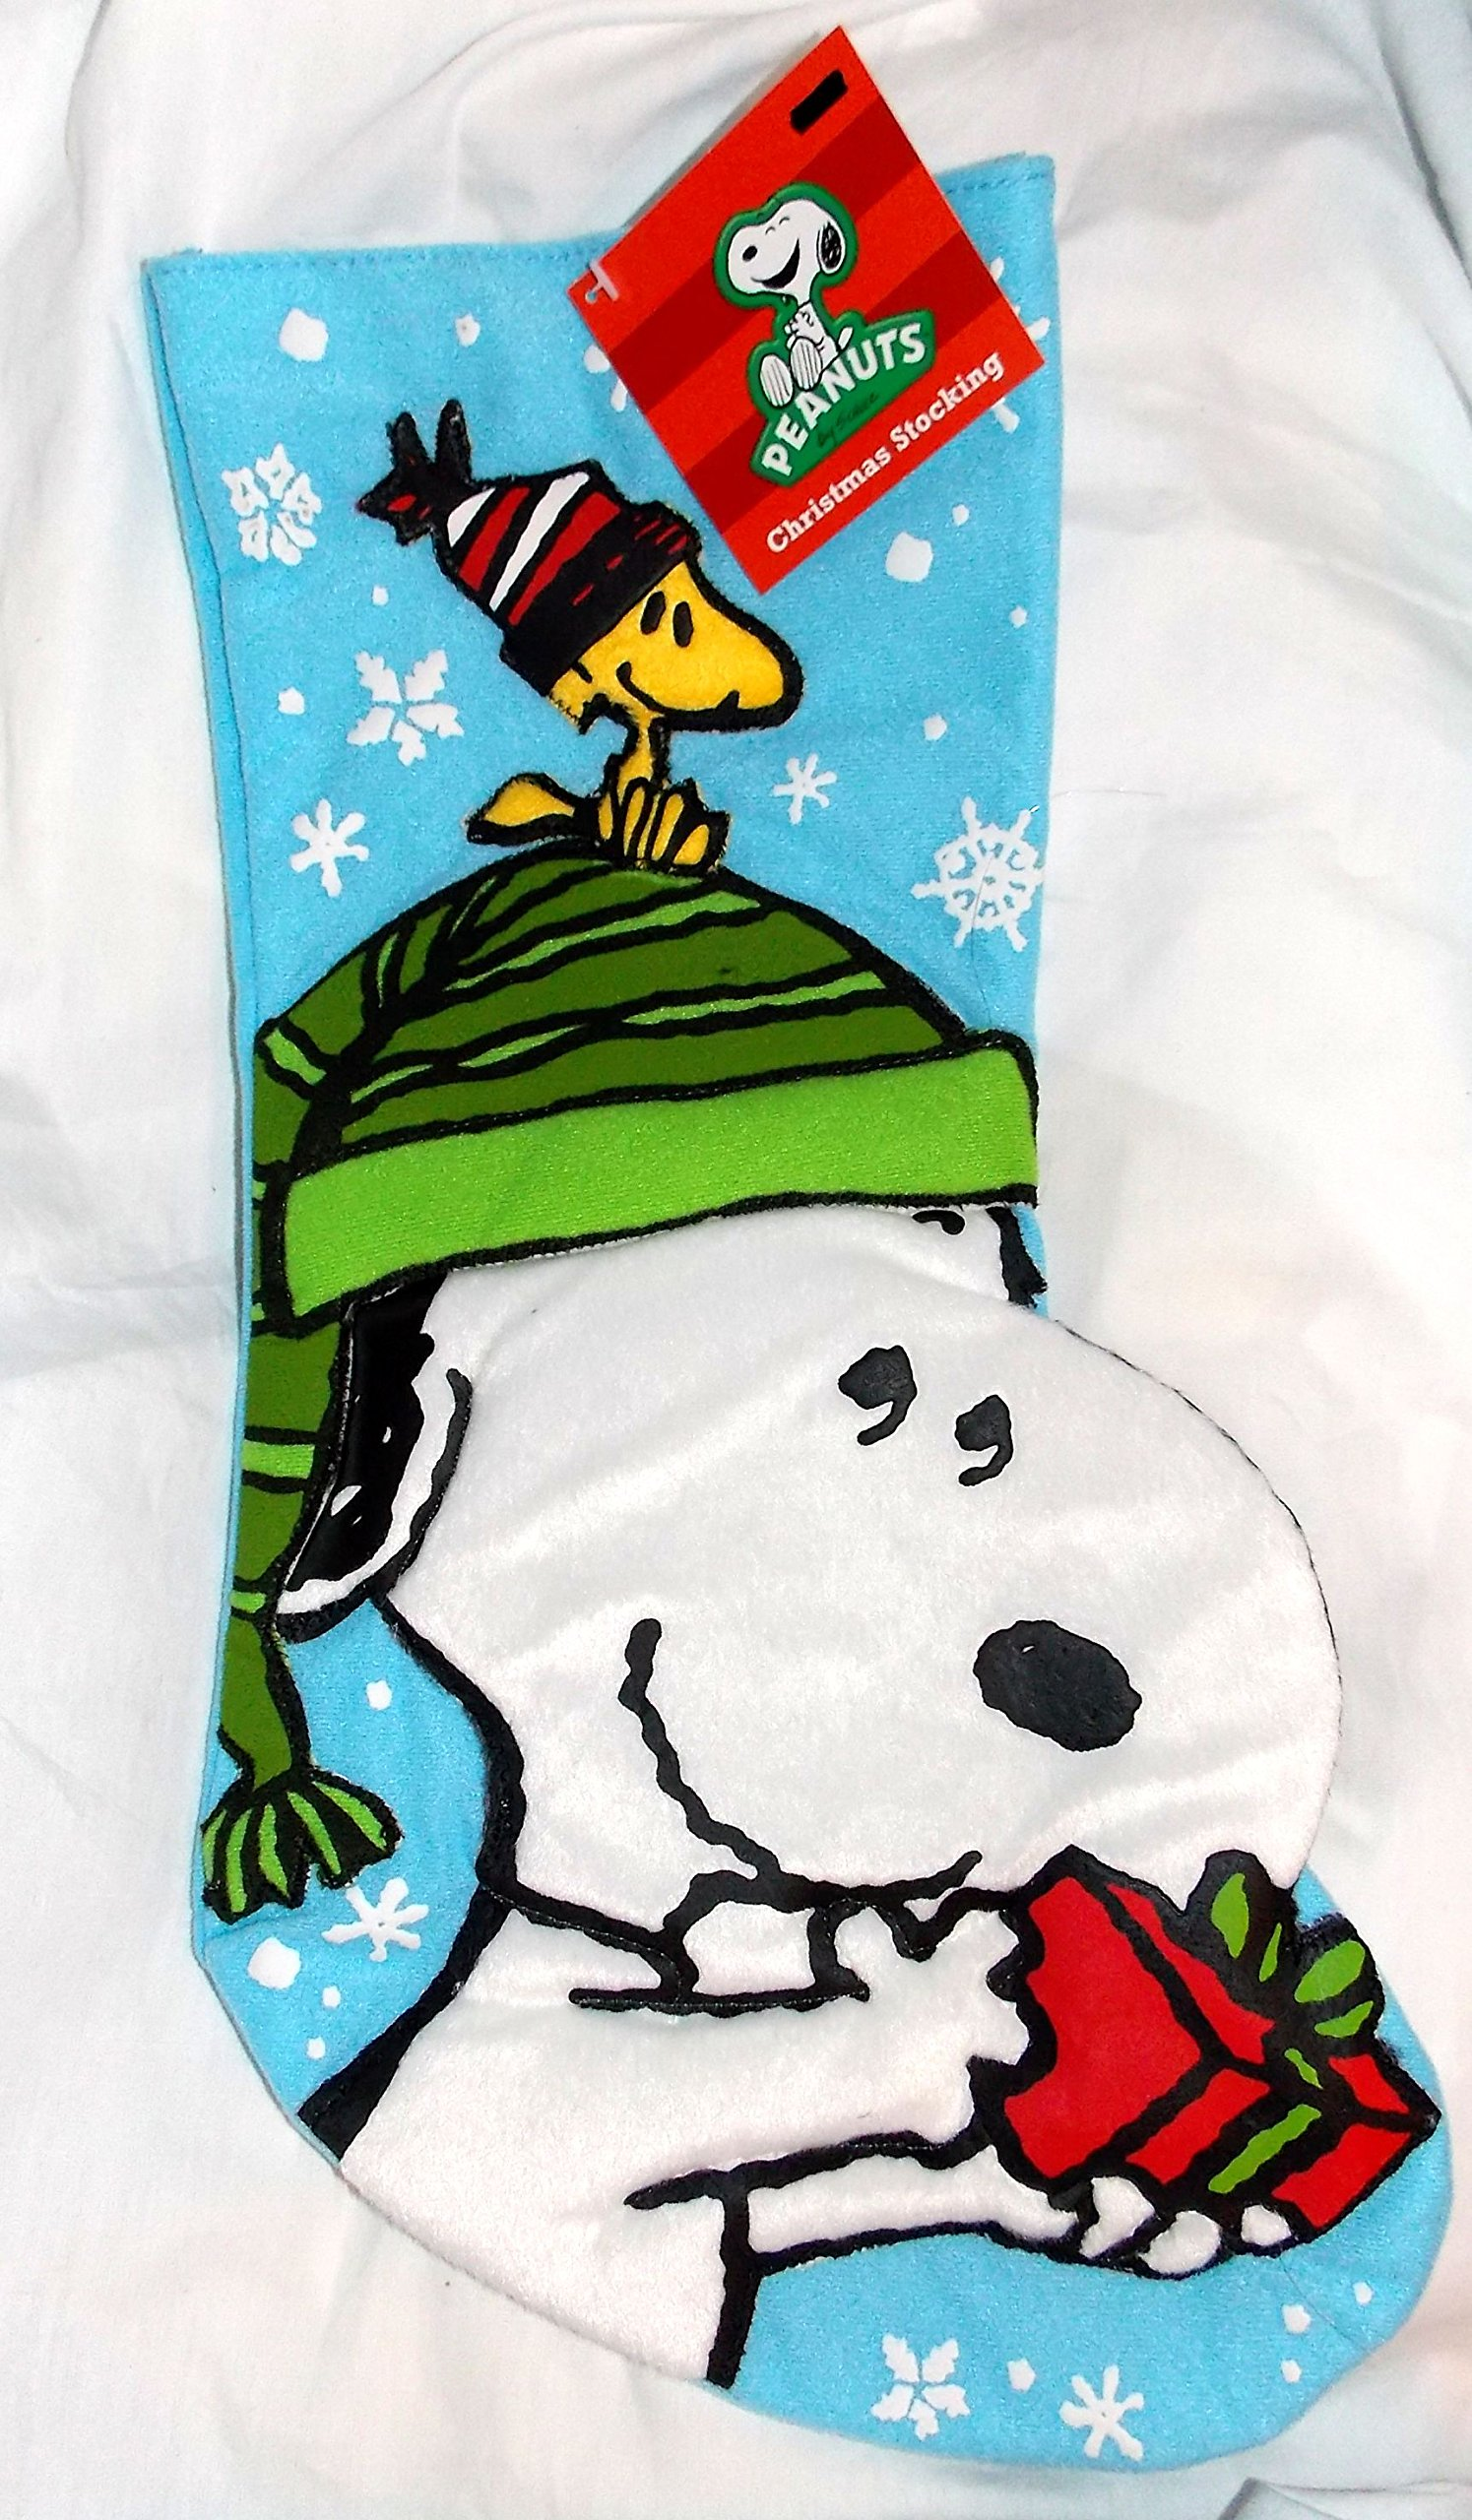 Peanuts Snoopy Holding Present with Woodstock on Head 17'' Christmas Stocking